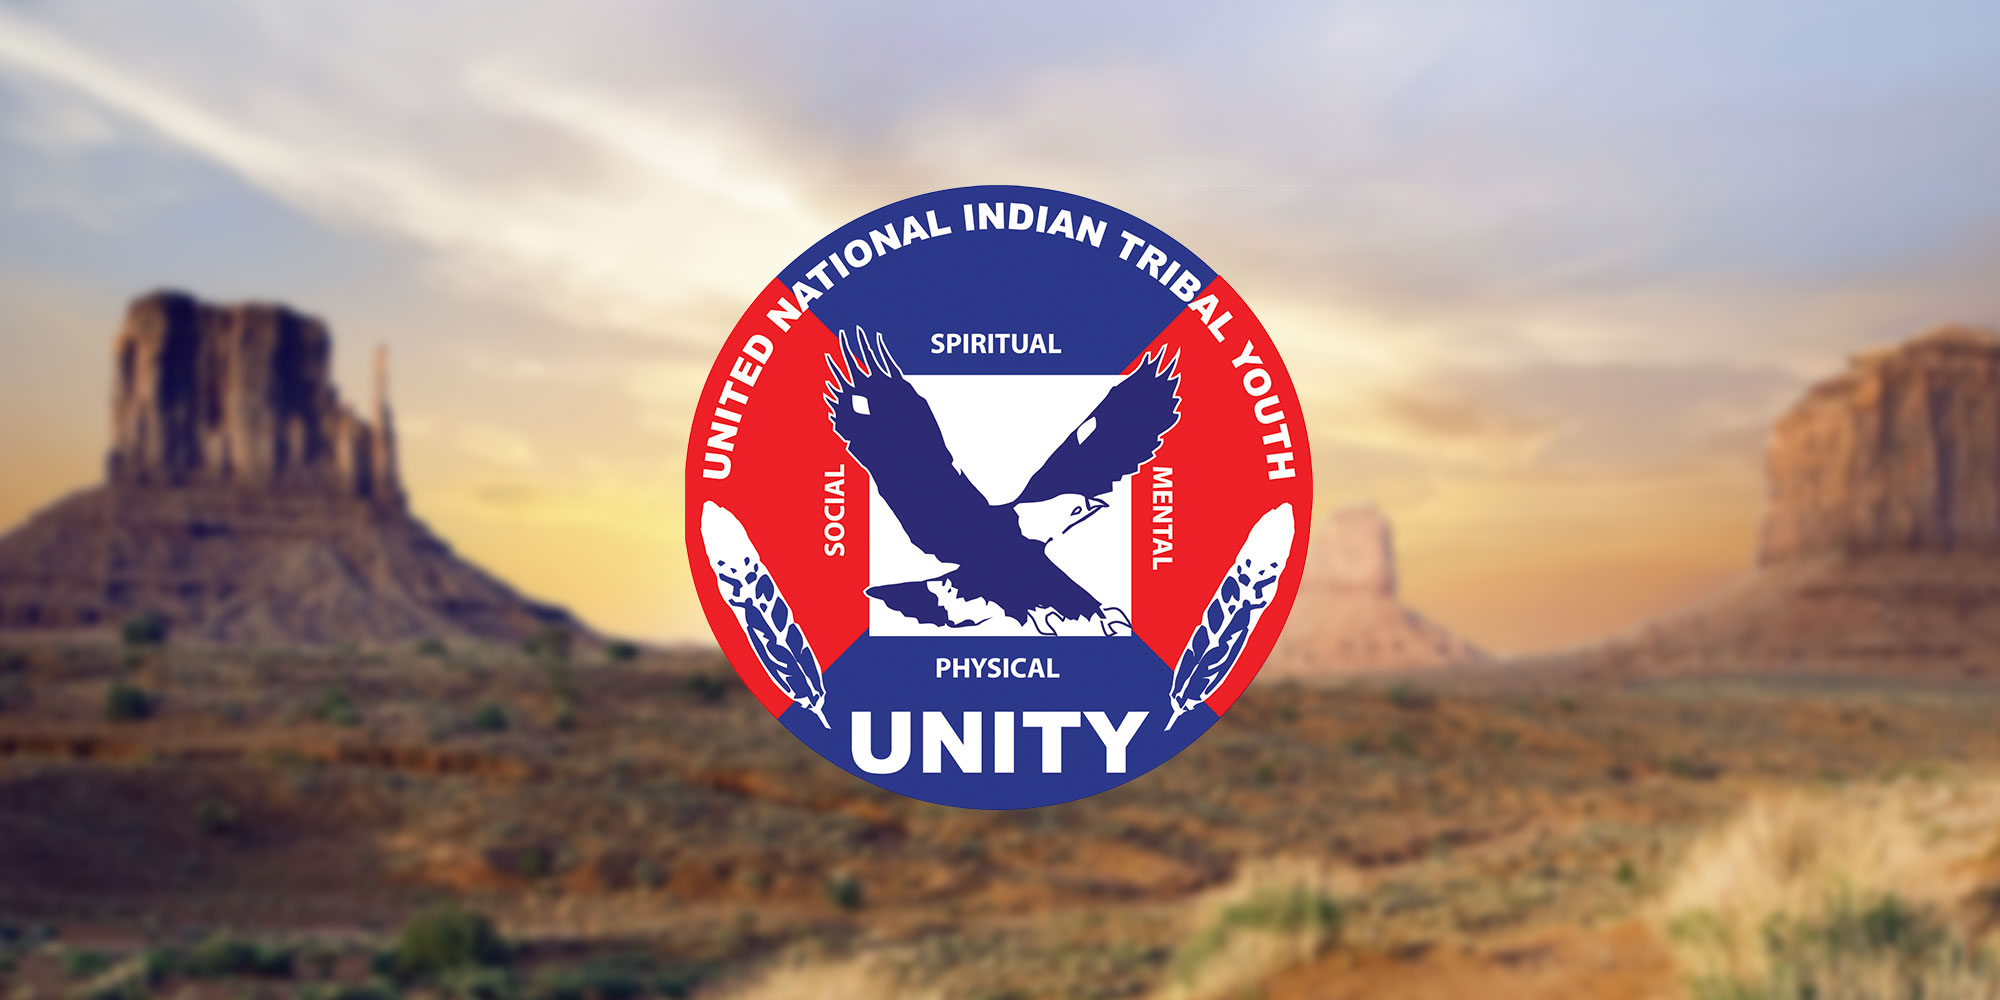 United National Indian Tribal Youth Annual Conference